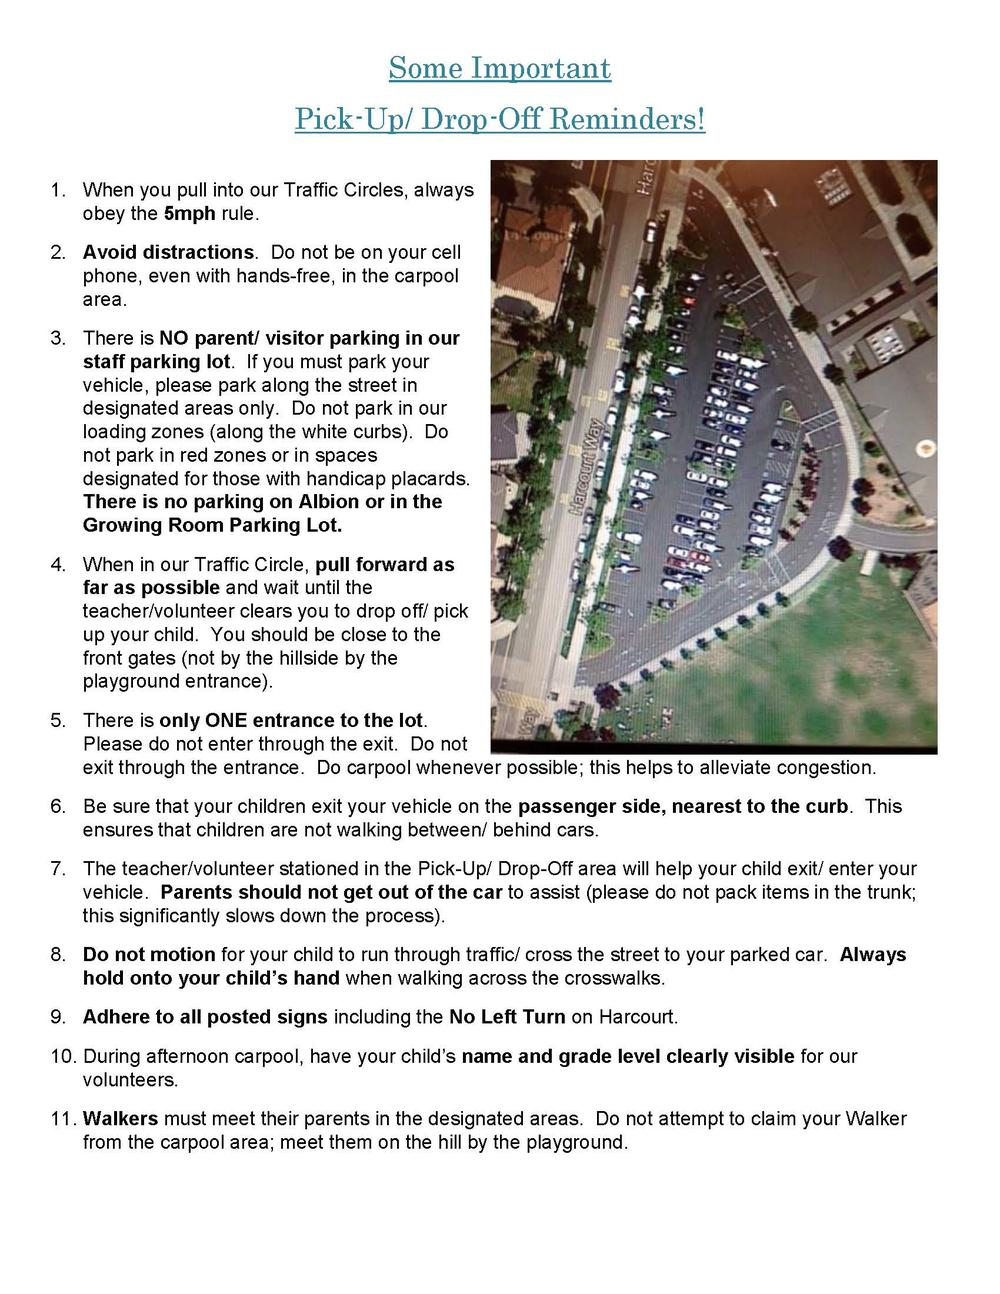 Parking Safety Guidelines w pictures Page 1